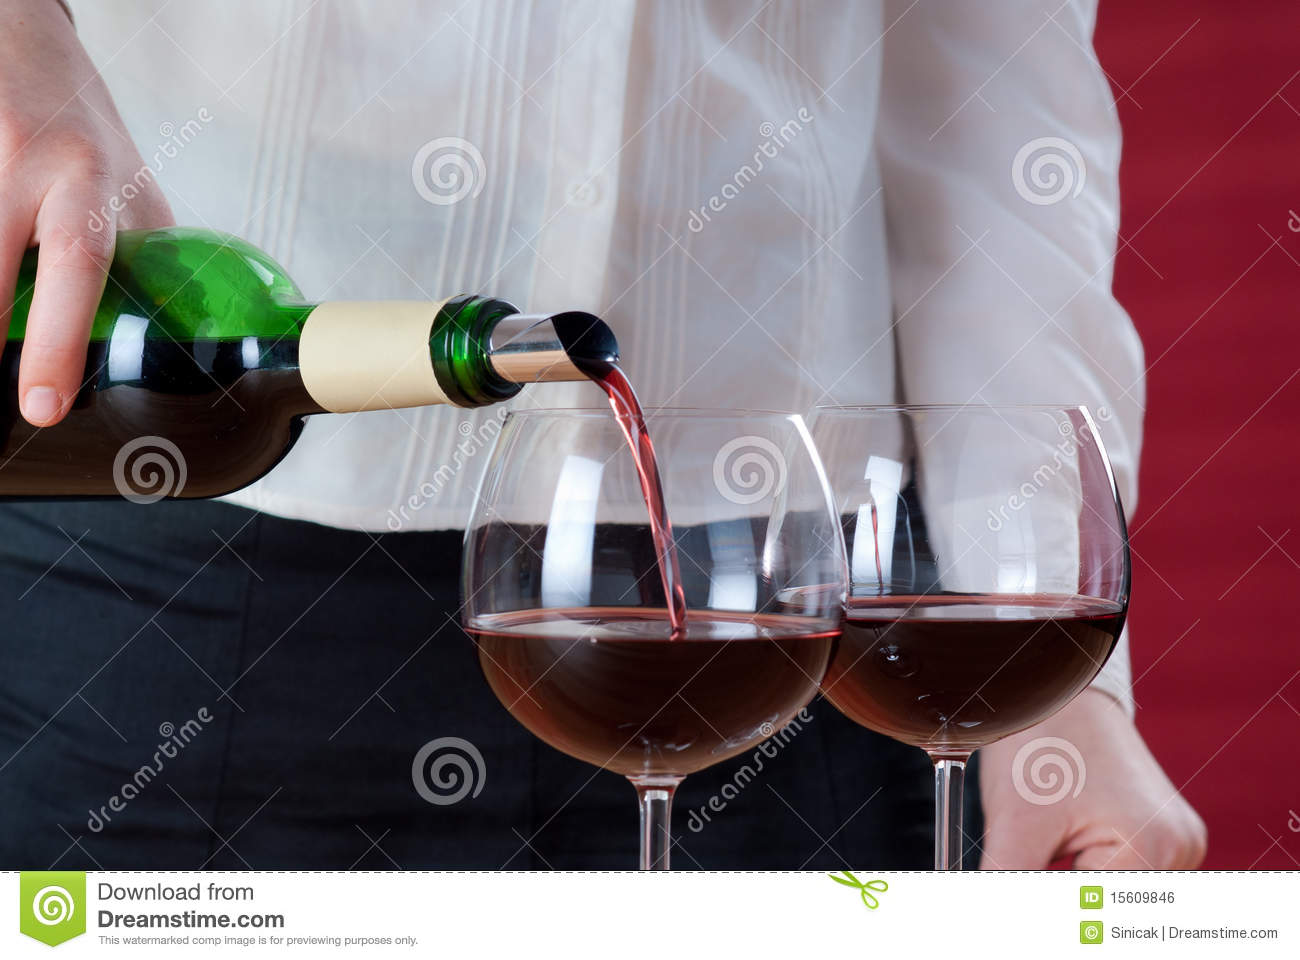 Waitress pouring red wine